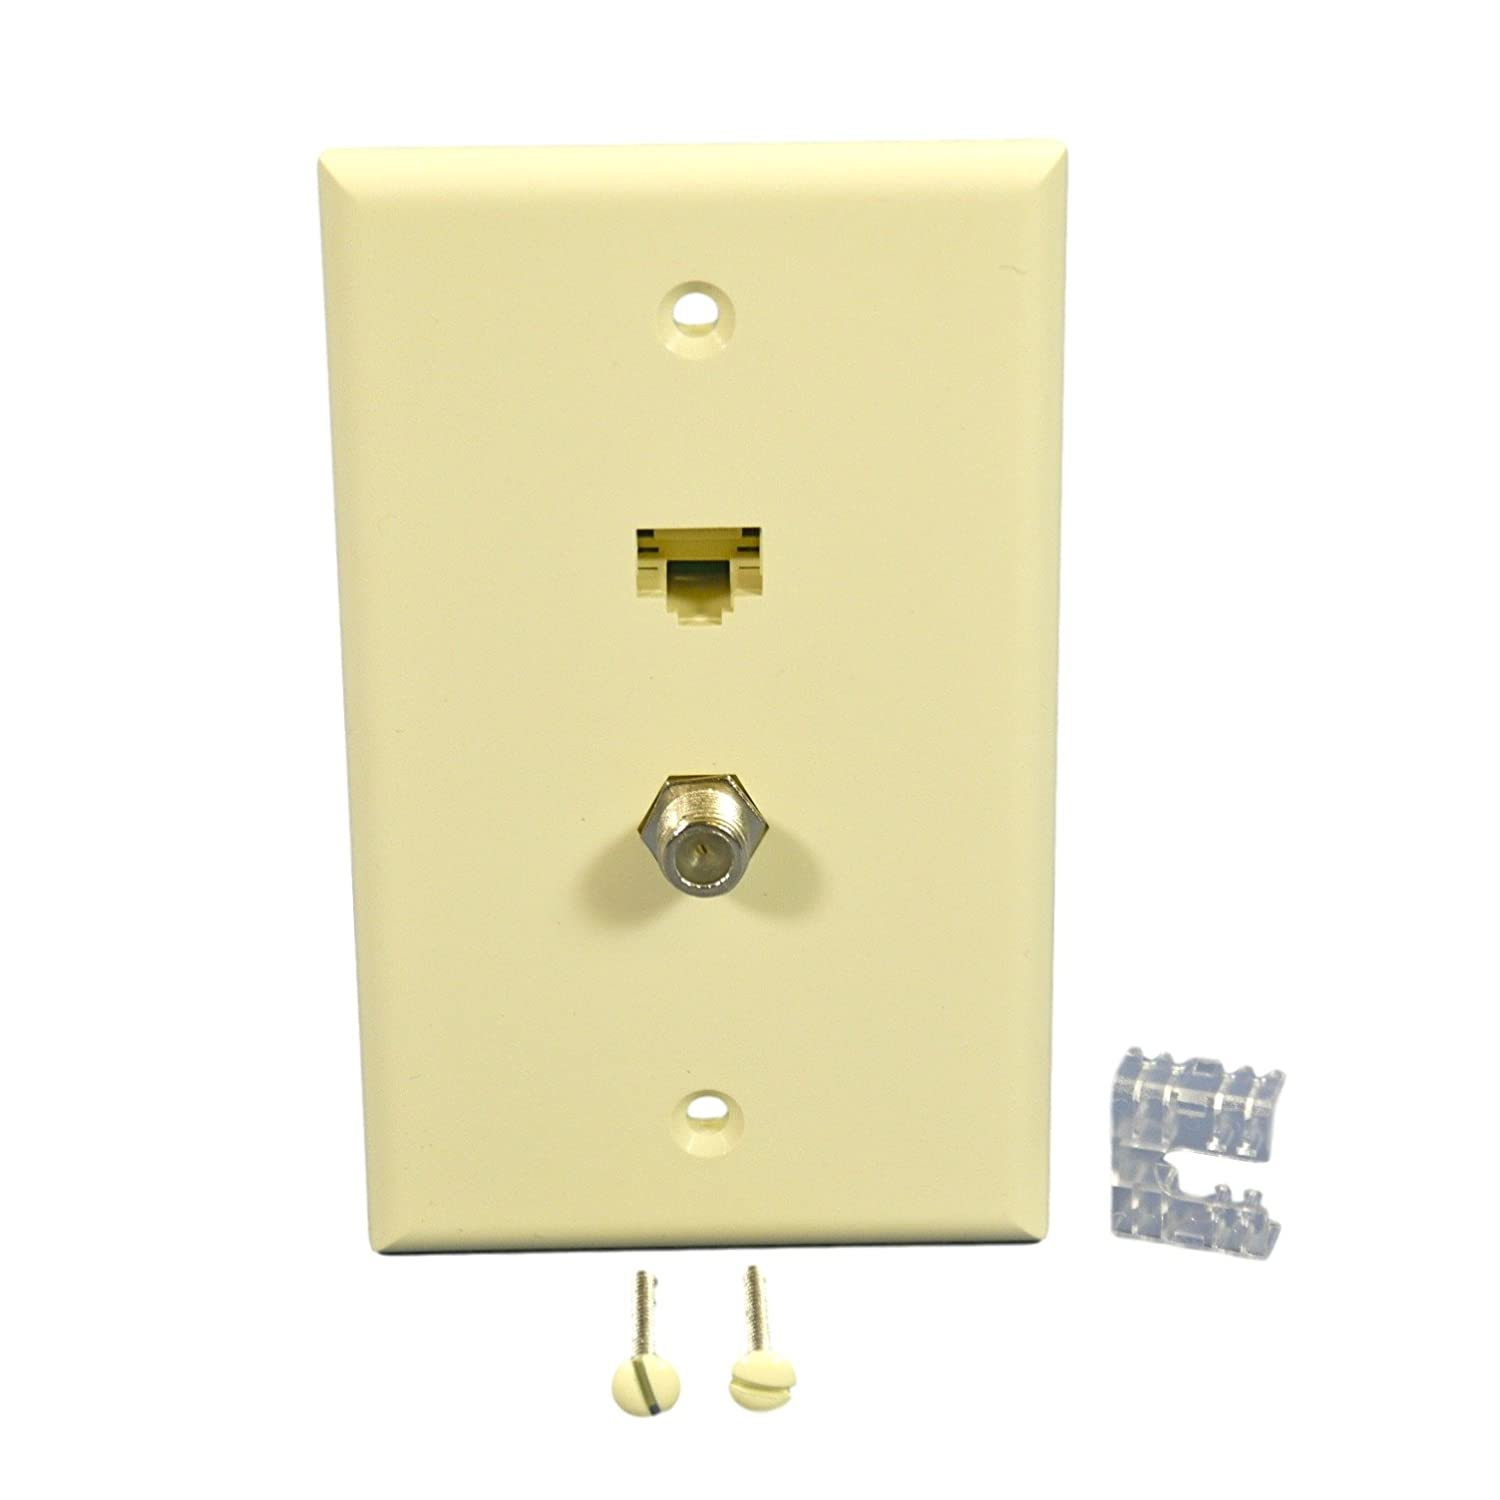 Leviton 5ea10 S2a Quickplate Standard Size 1 Gang 2 Port Cat6 Patch Panel 110 Type 24 568a B Compatible Wallplate Almond Home Audio Theater